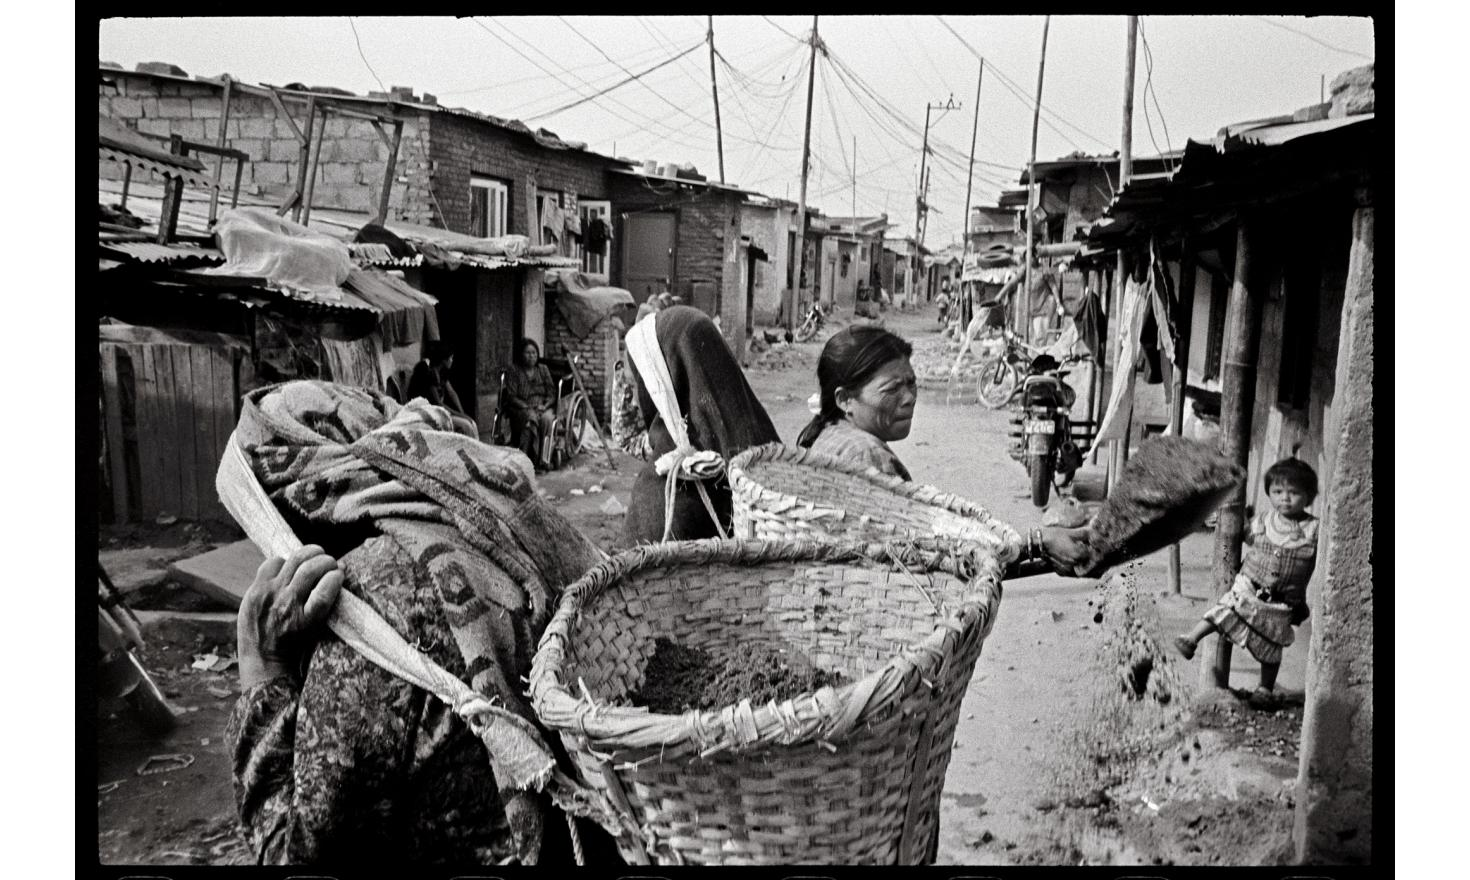 Manohara slum, Kathmandu Nepal. In Manohara, the biggest of Kathmandu's 63 shantytowns, migrant women struggle to make a living. Some grow vegetables to sell in the city markets ; others are exploited in the sweatshops of the slum.